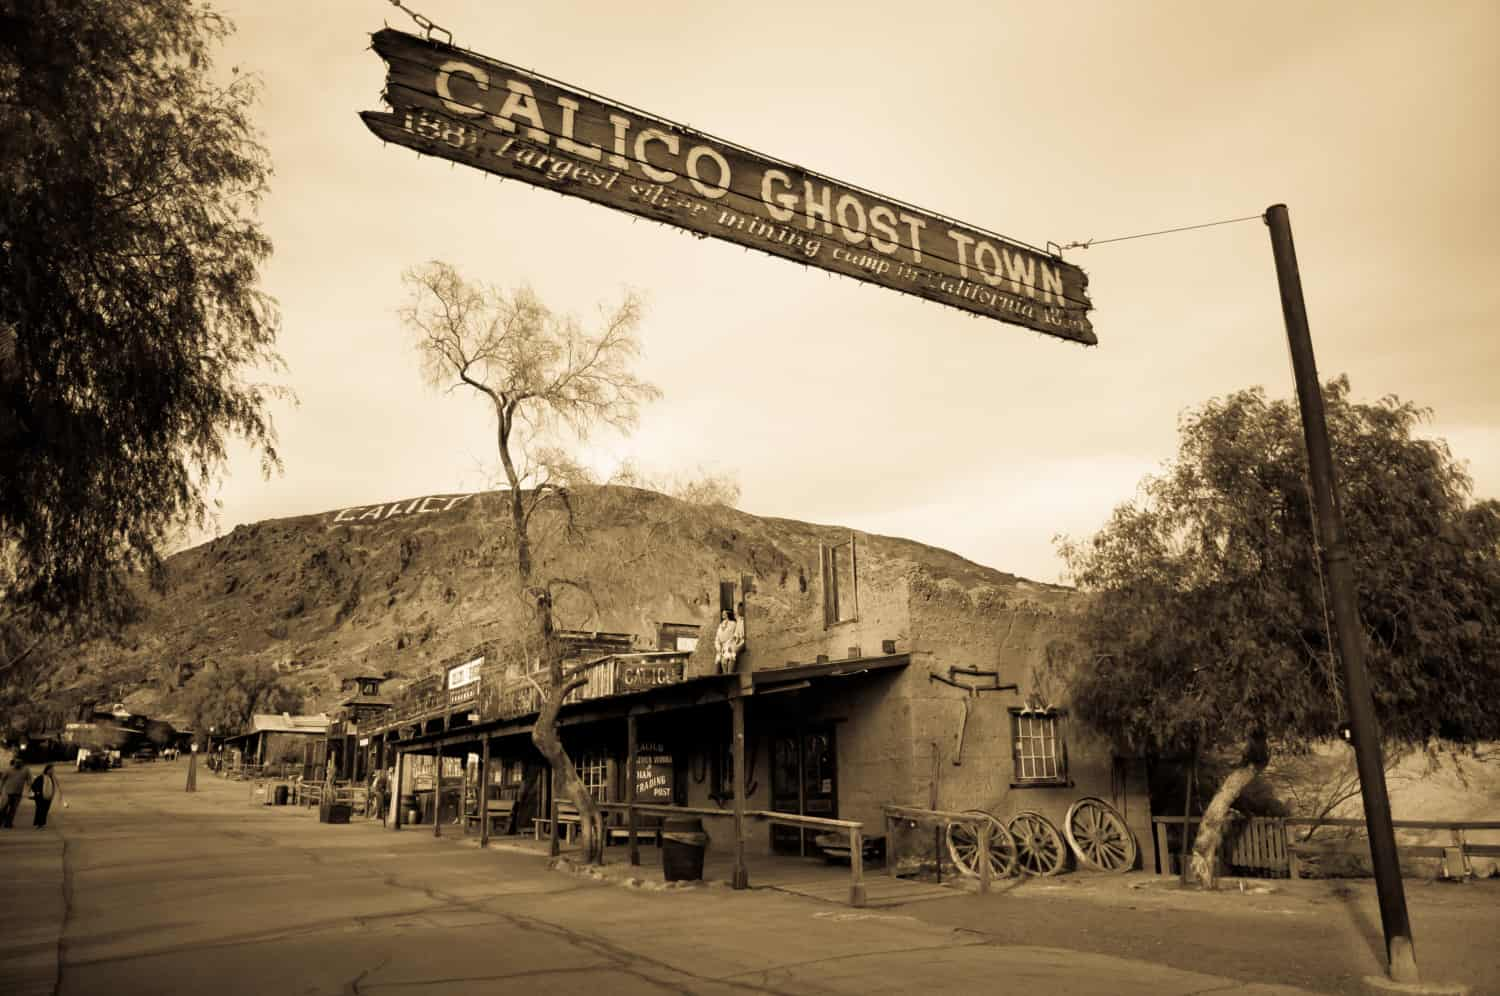 Image for the street in pet friendly Calico Ghost Town, CA